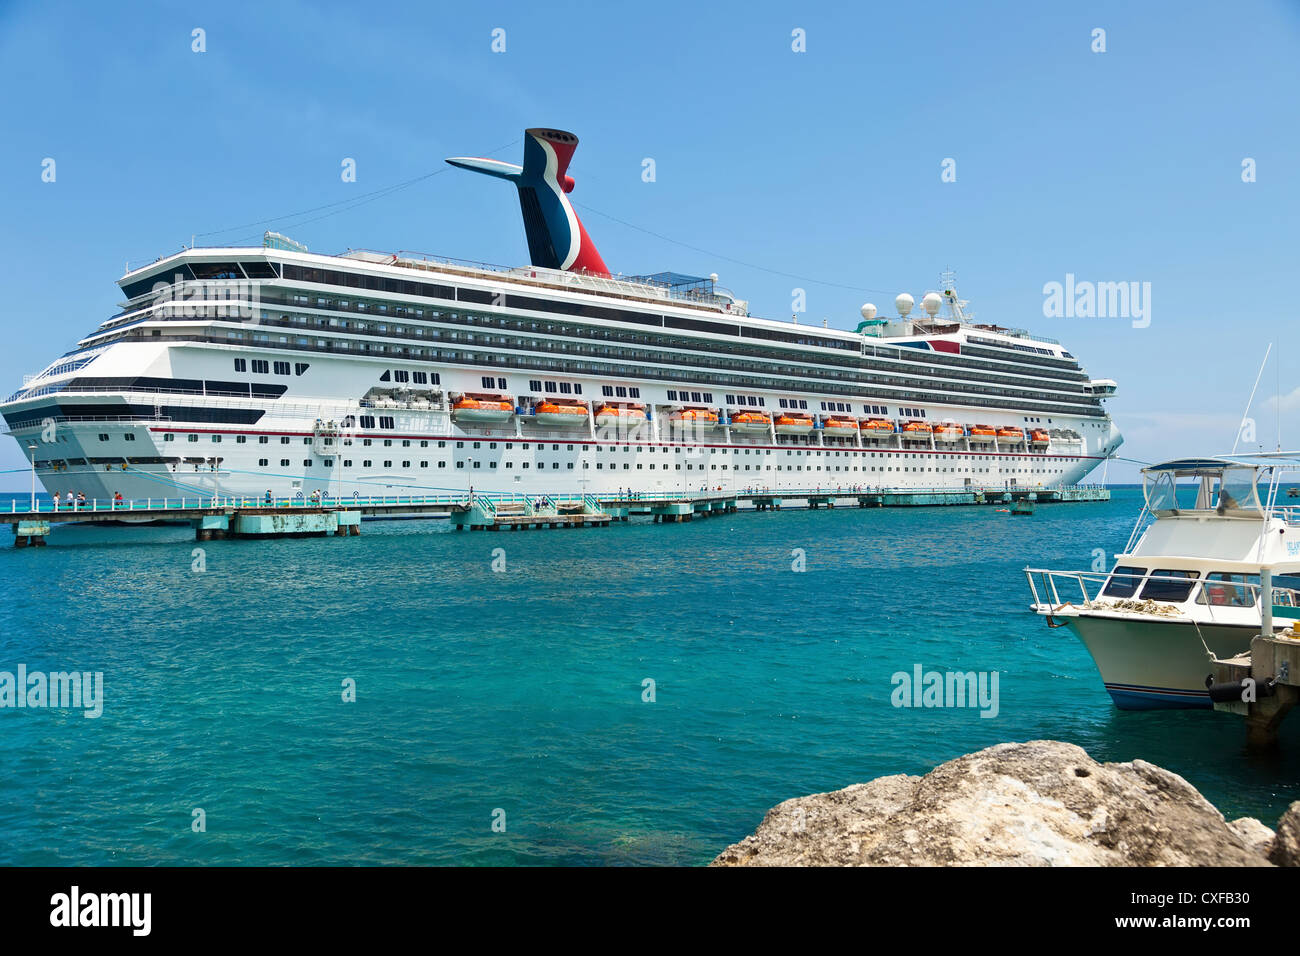 Luxury cruise ship in port of Ocho Rios, Jamaica - Stock Image